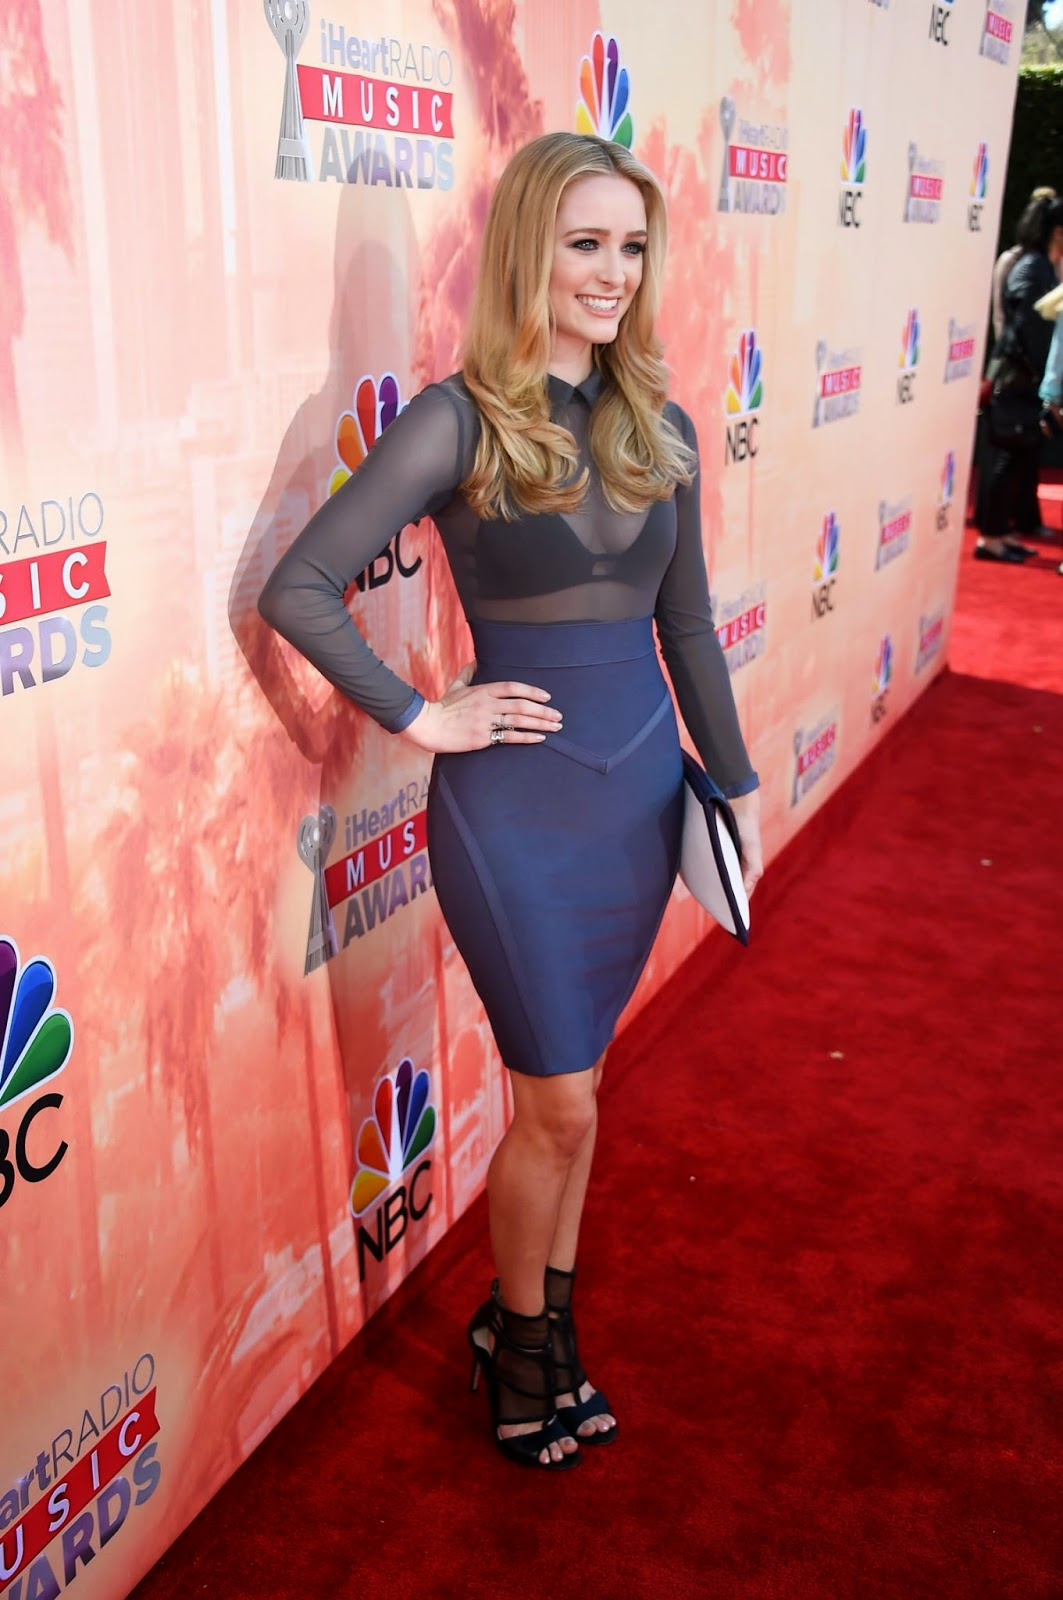 Actress @ Greer Grammer at 2015 iHeartRadio Music Awards in LA